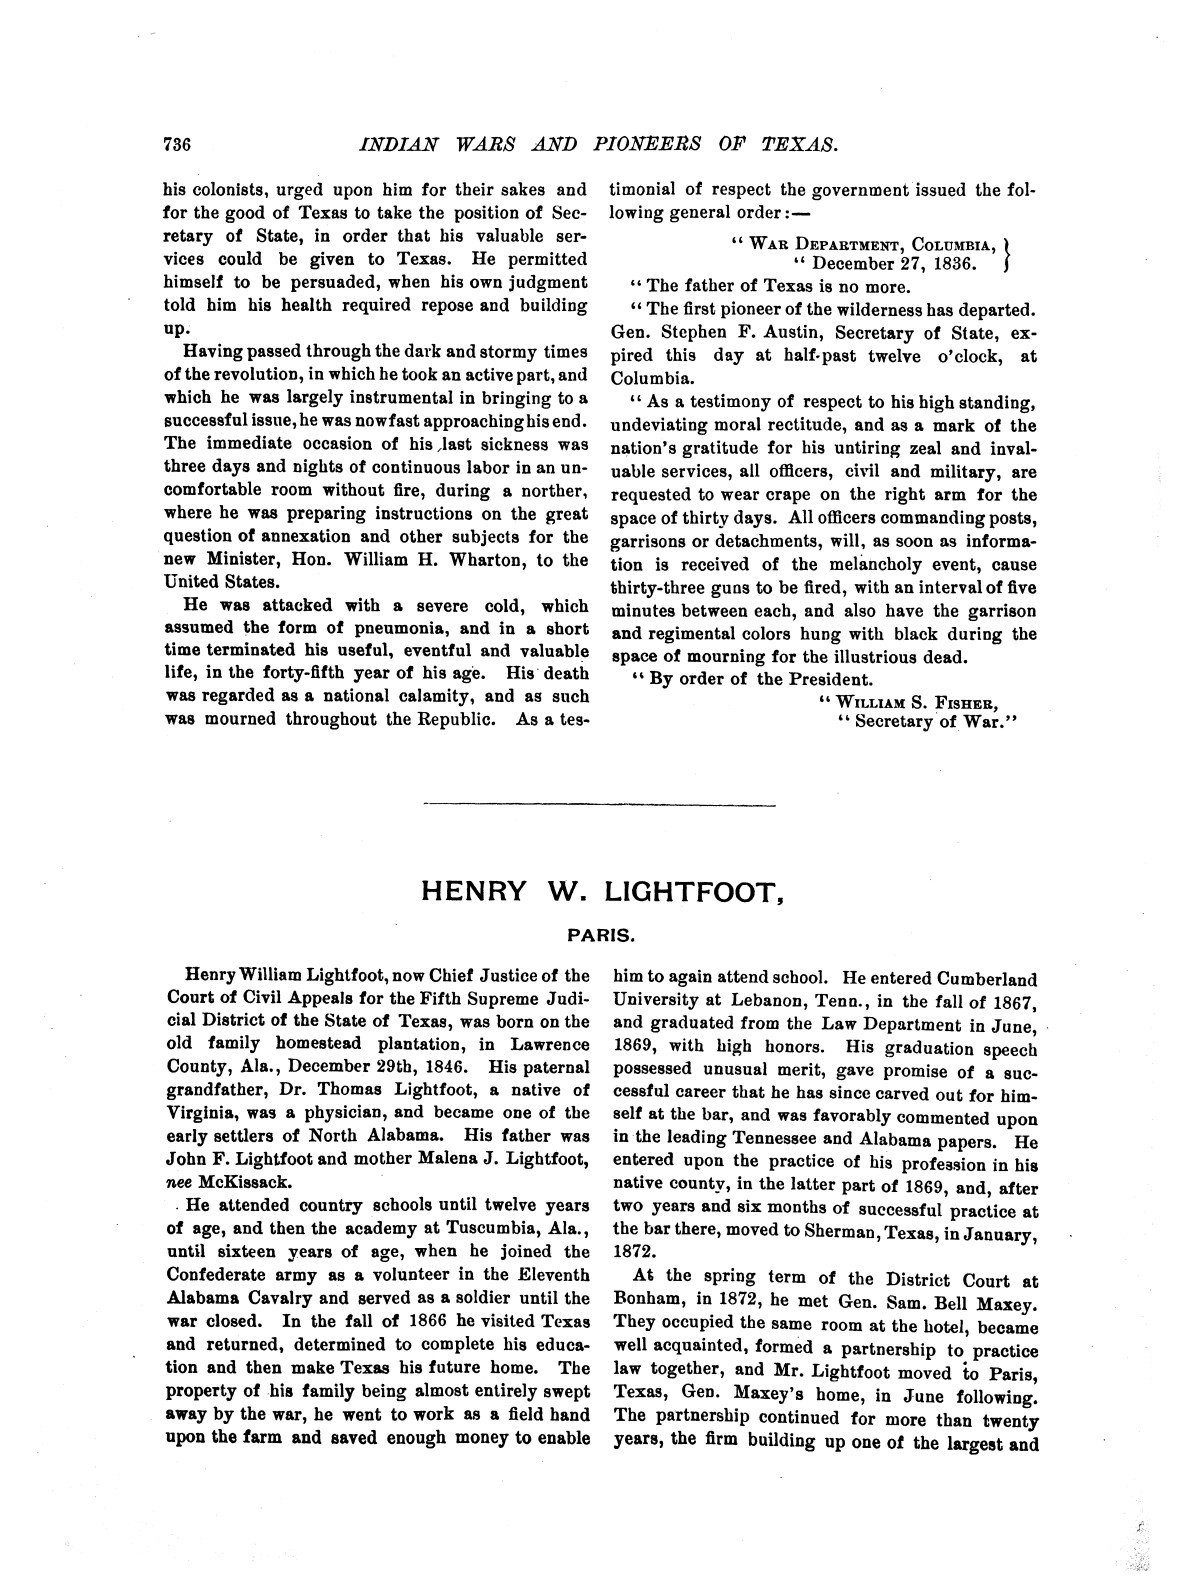 Indian wars and pioneers of Texas / by John Henry Brown.                                                                                                      [Sequence #]: 855 of 894